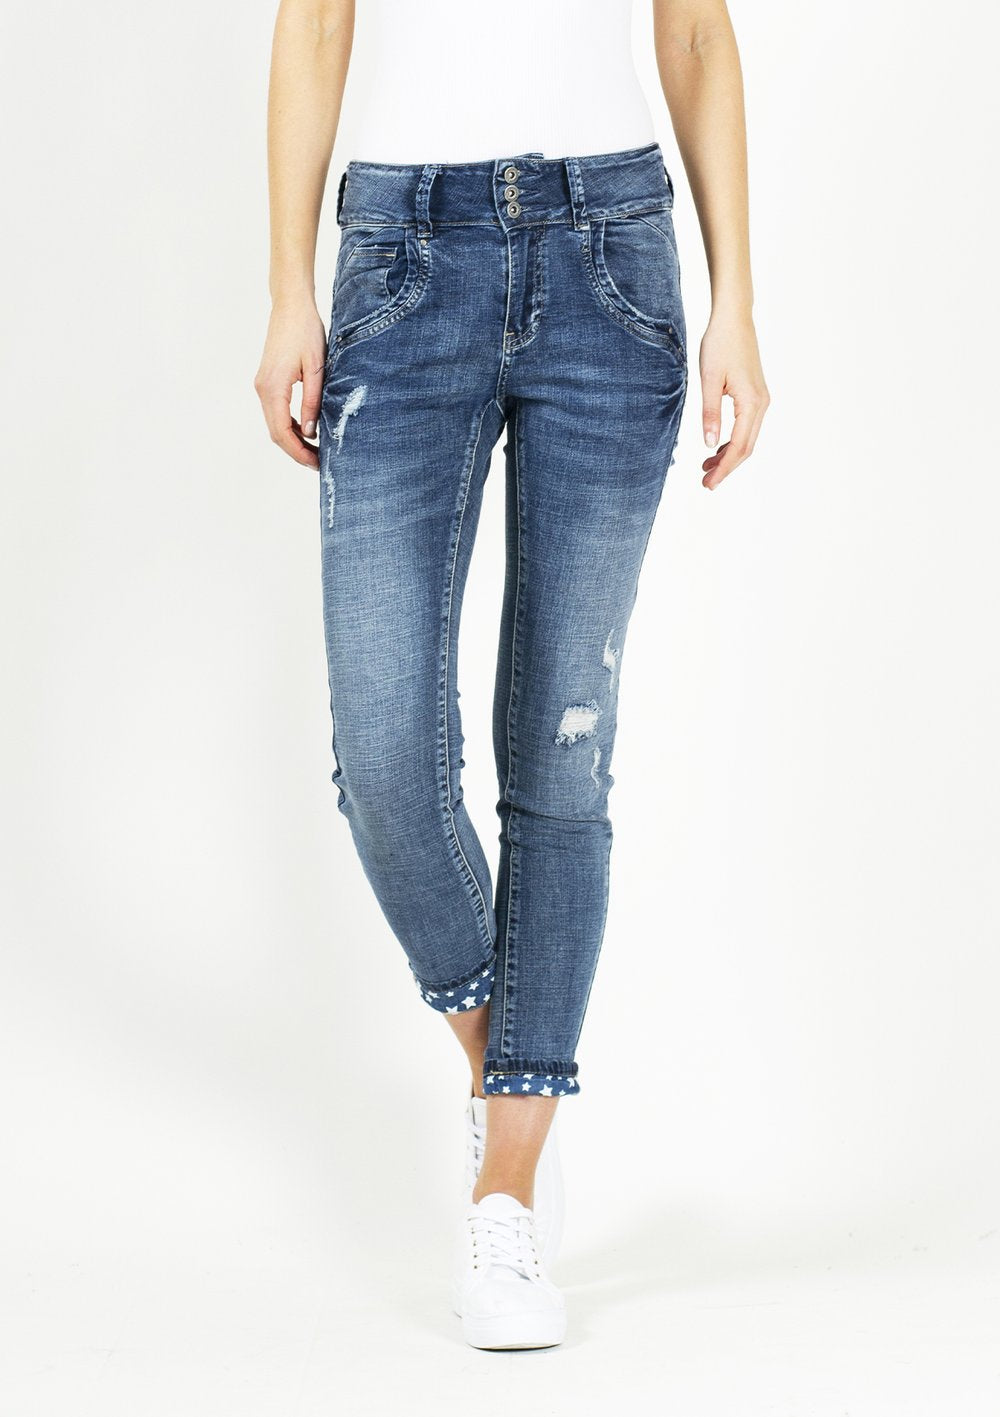 Kim Jean in Medium Blue Denim - PREORDER